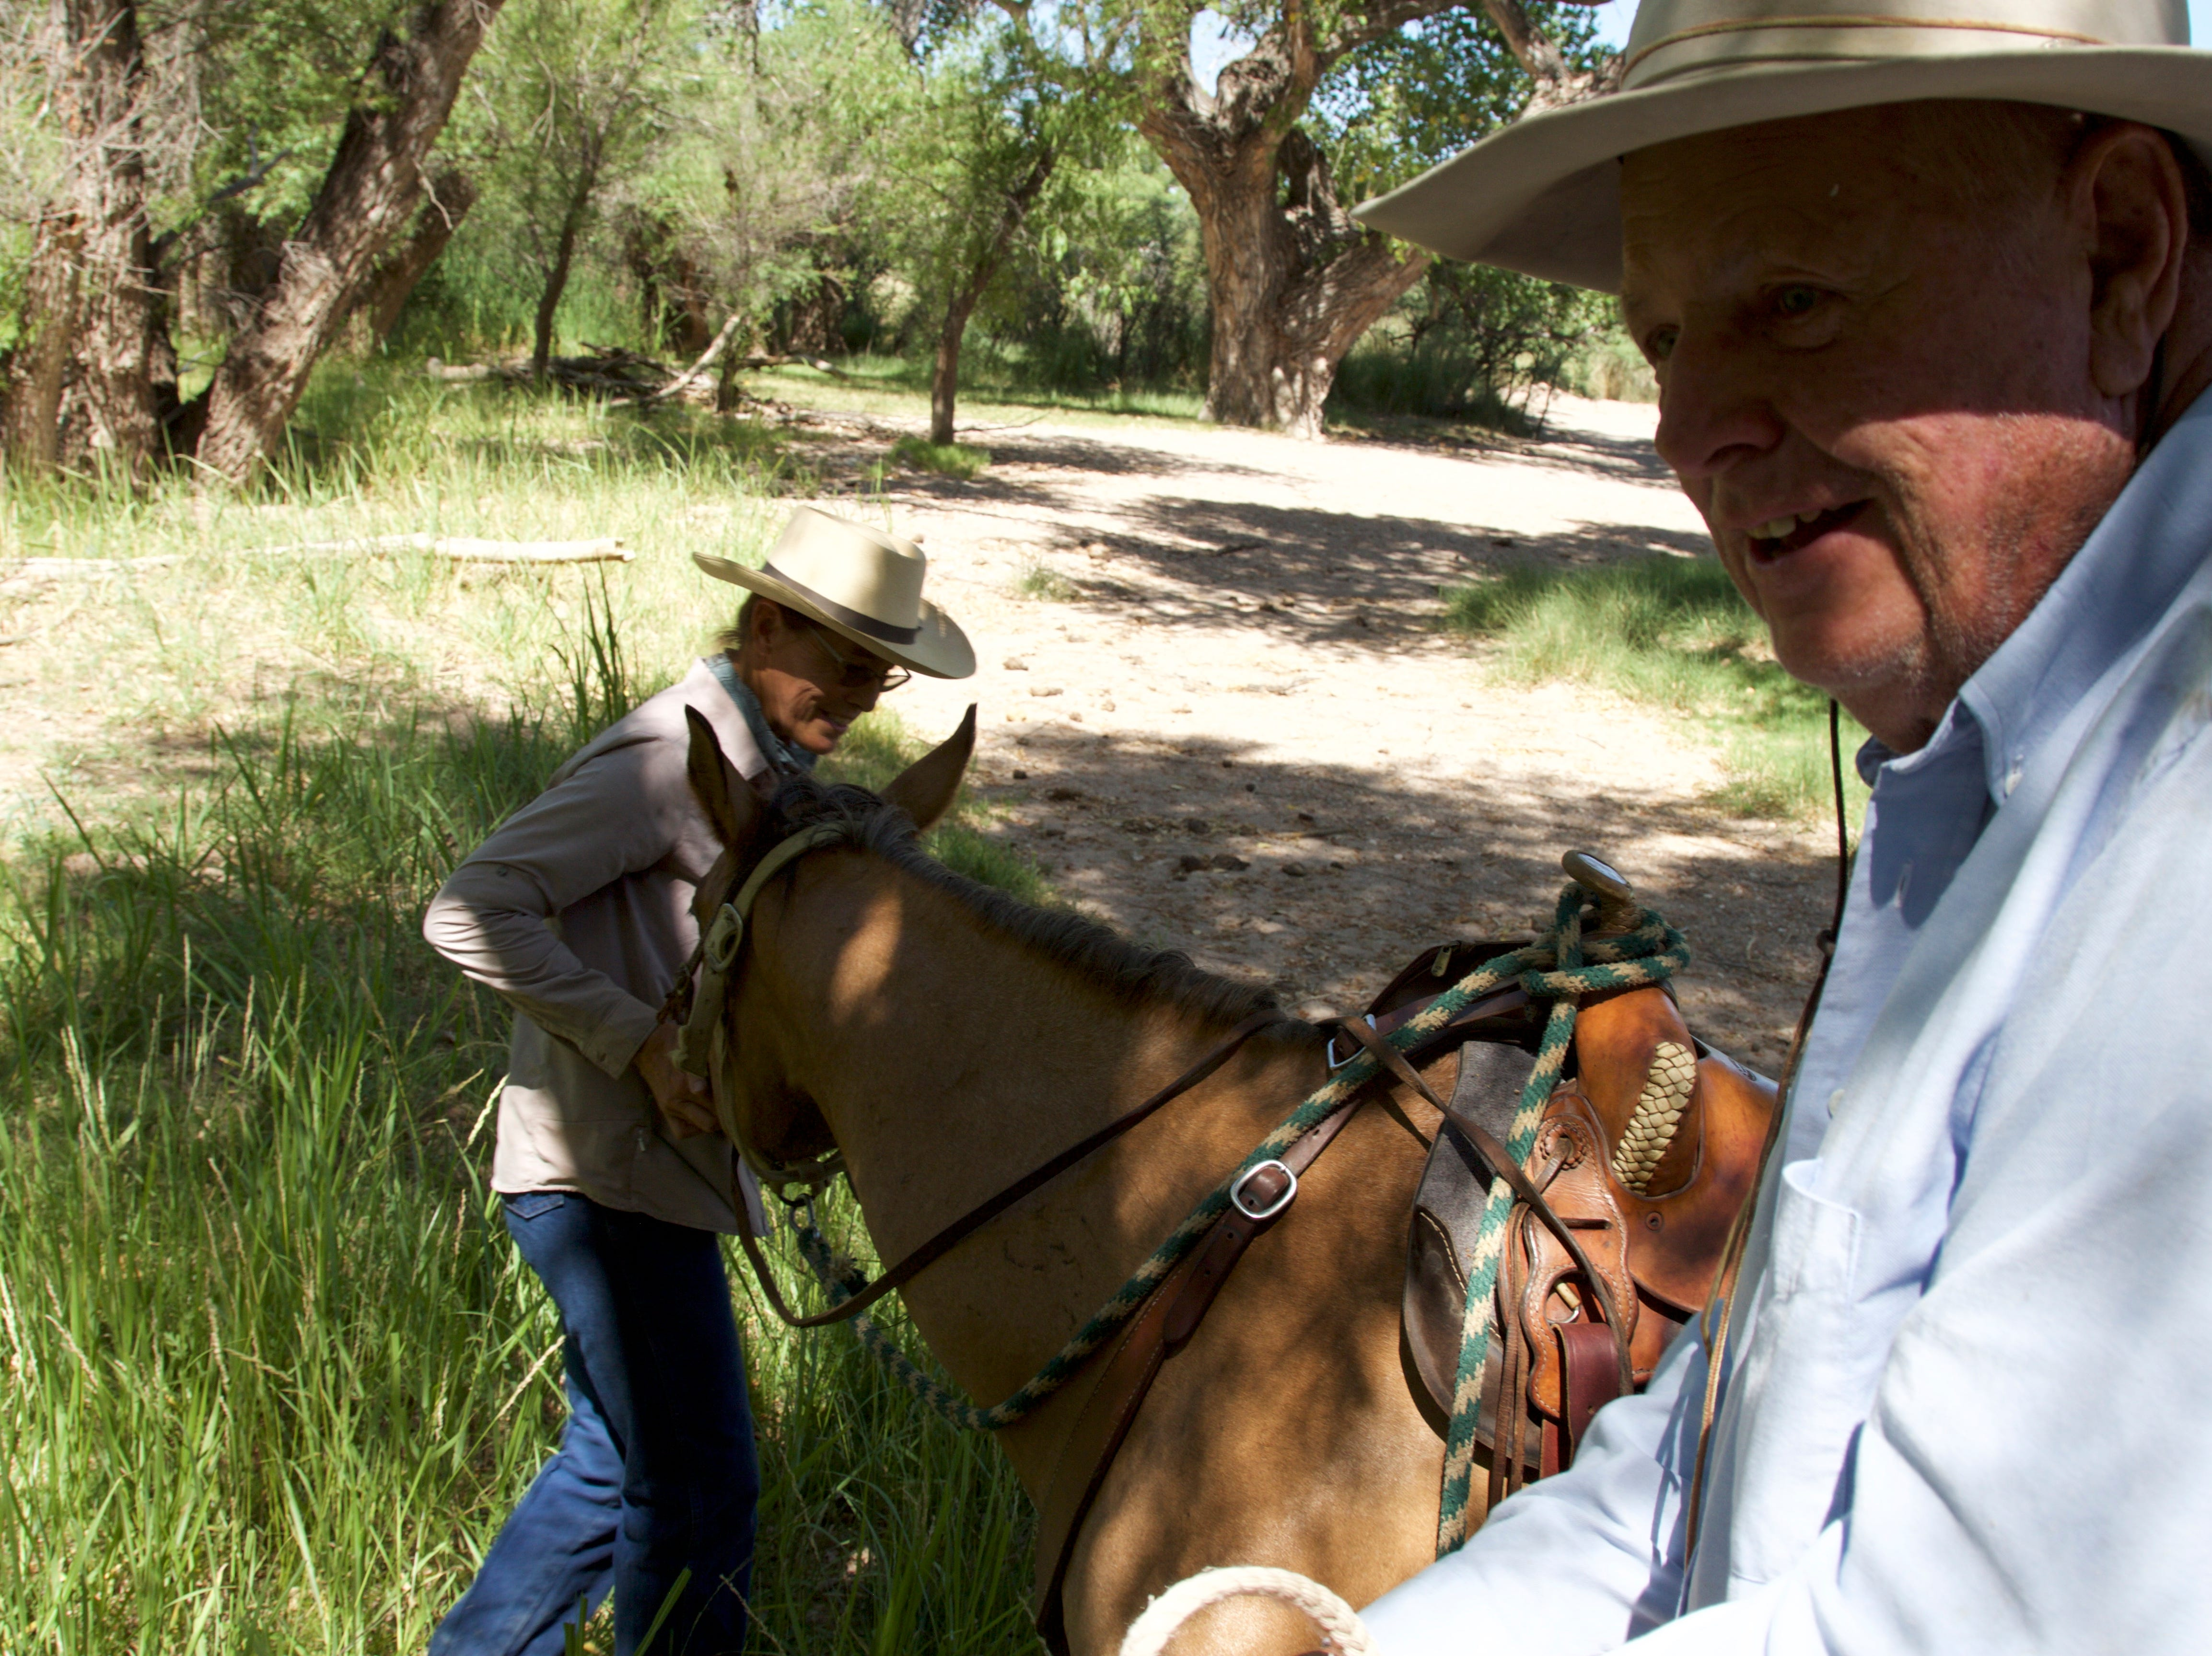 Mike Hayhurst and Holly Richter ride horses along the Babocomari River on June 23, 2018.